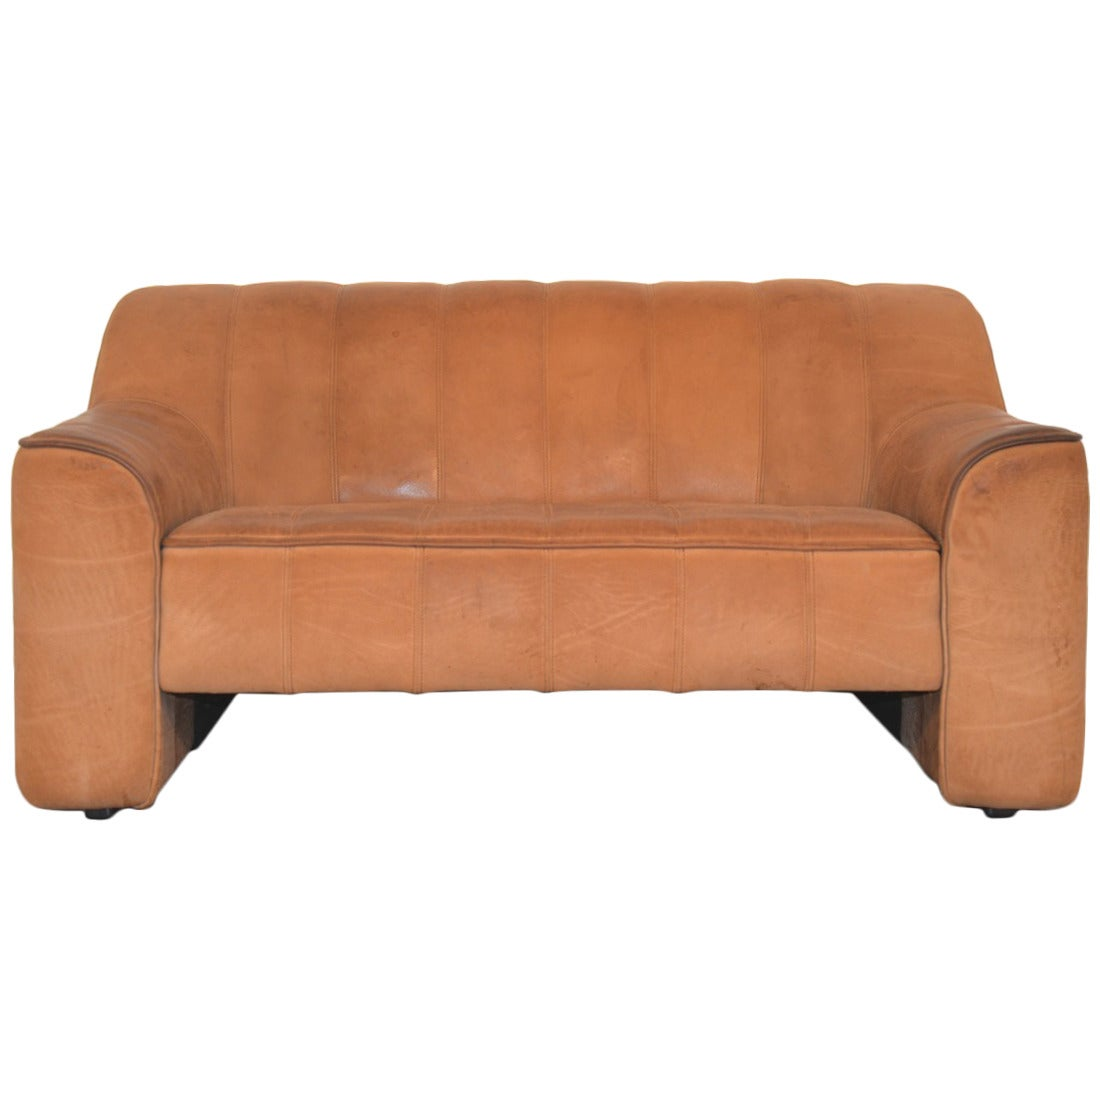 de sede sofa vintage replacement outdoor cushions uk ds 44 two seat or loveseat 1970s for